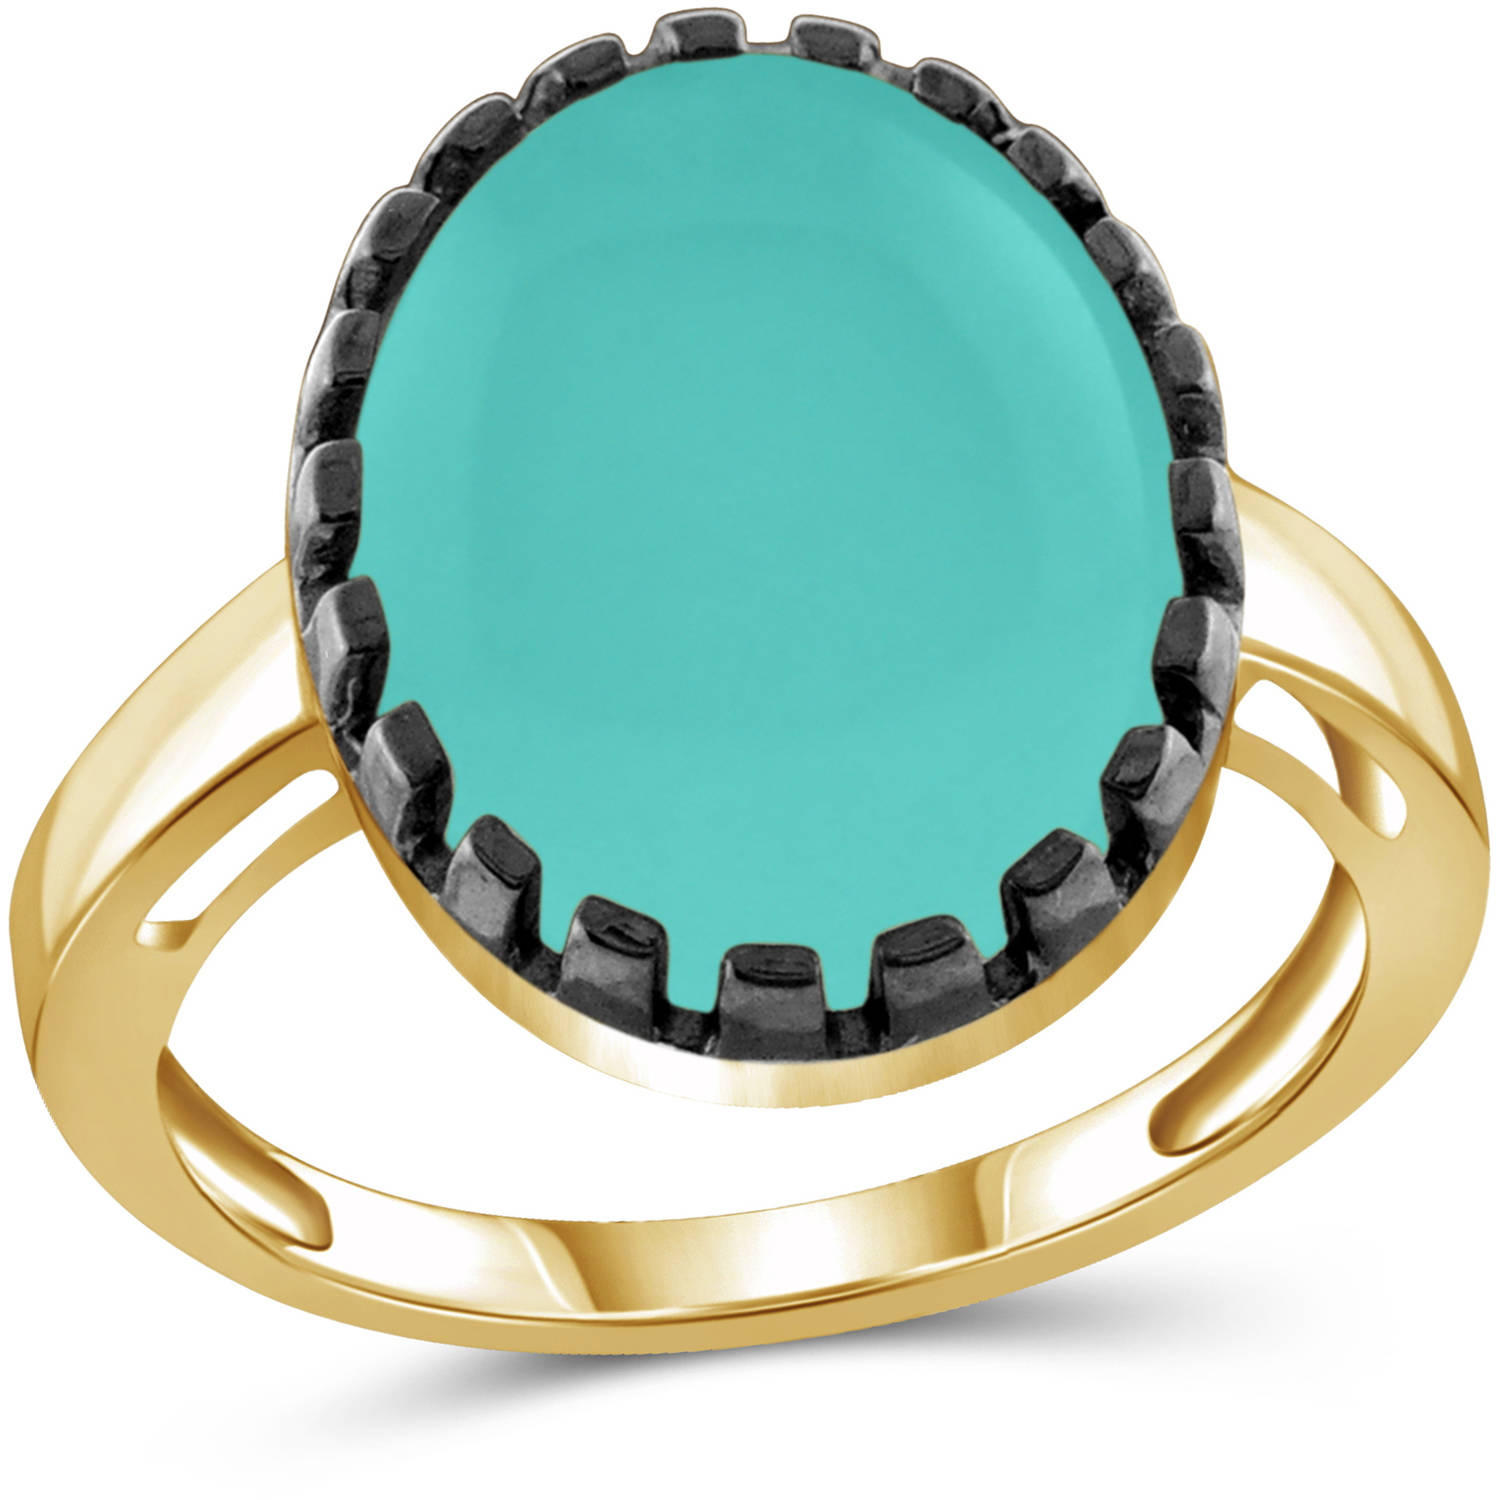 JewelersClub 9-3 4 Carat T.G.W. Chalcedony 14kt Gold over Silver with Black Rhodium-Plated Fashion Ring by JewelersClub